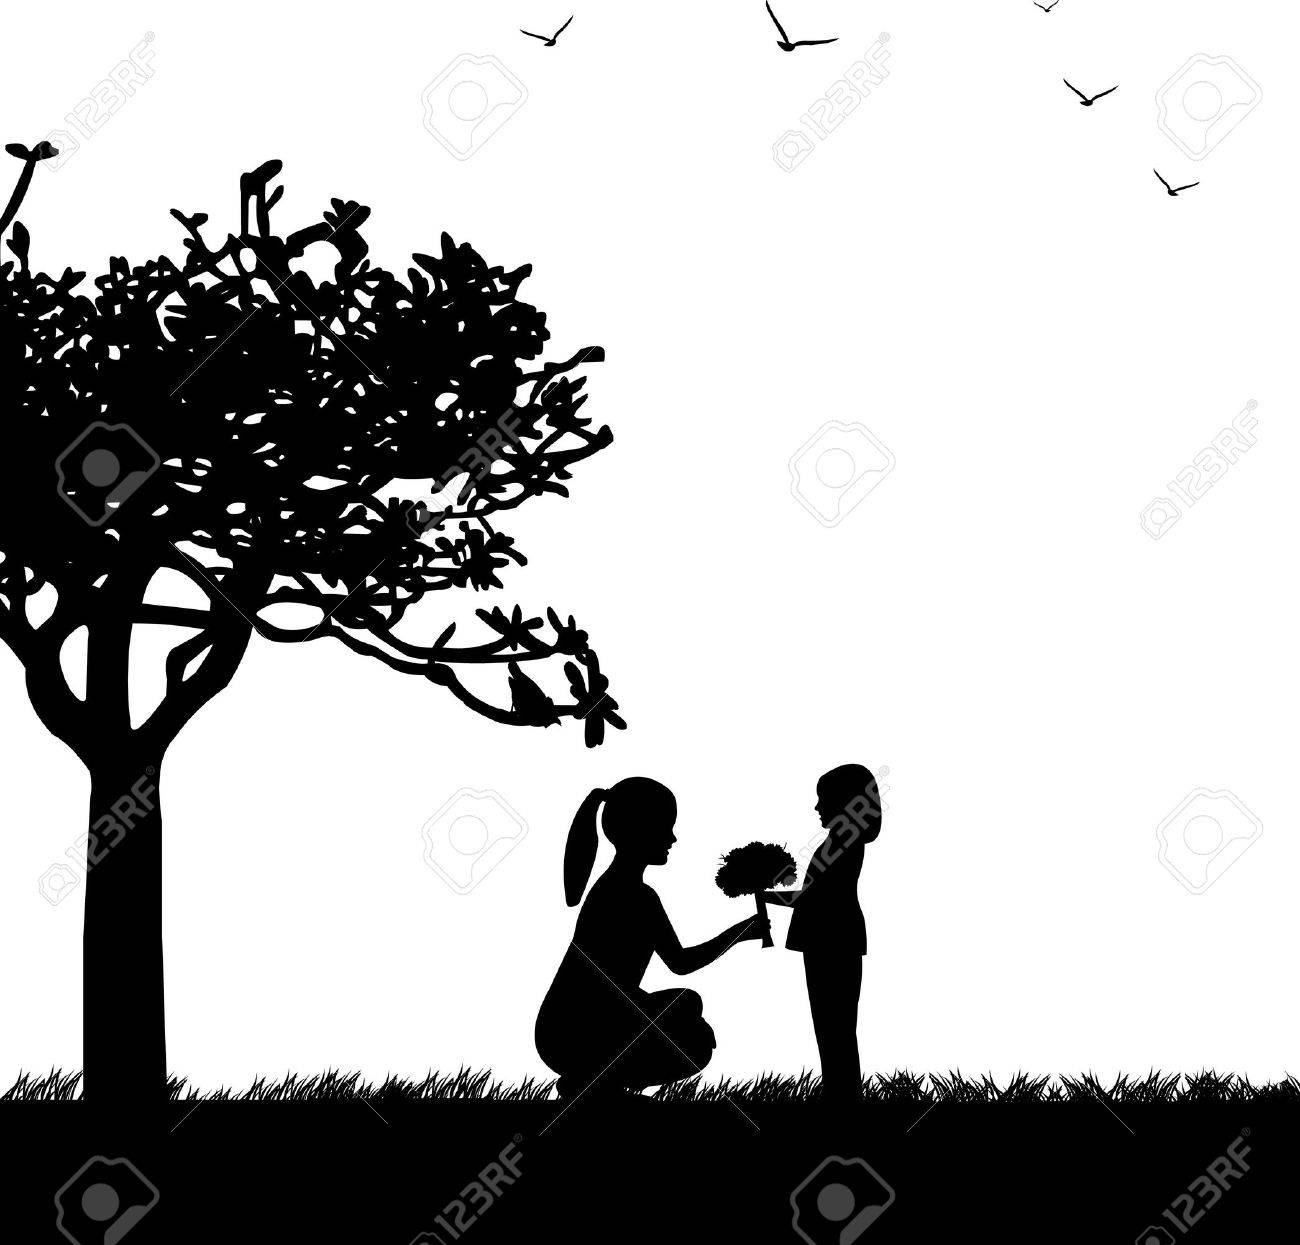 Mother s day celebration between mother and daughter in park, beautiful concept wallpaper for happy mother s day celebration, one in the series of similar images silhouette Stock Vector - 13270986